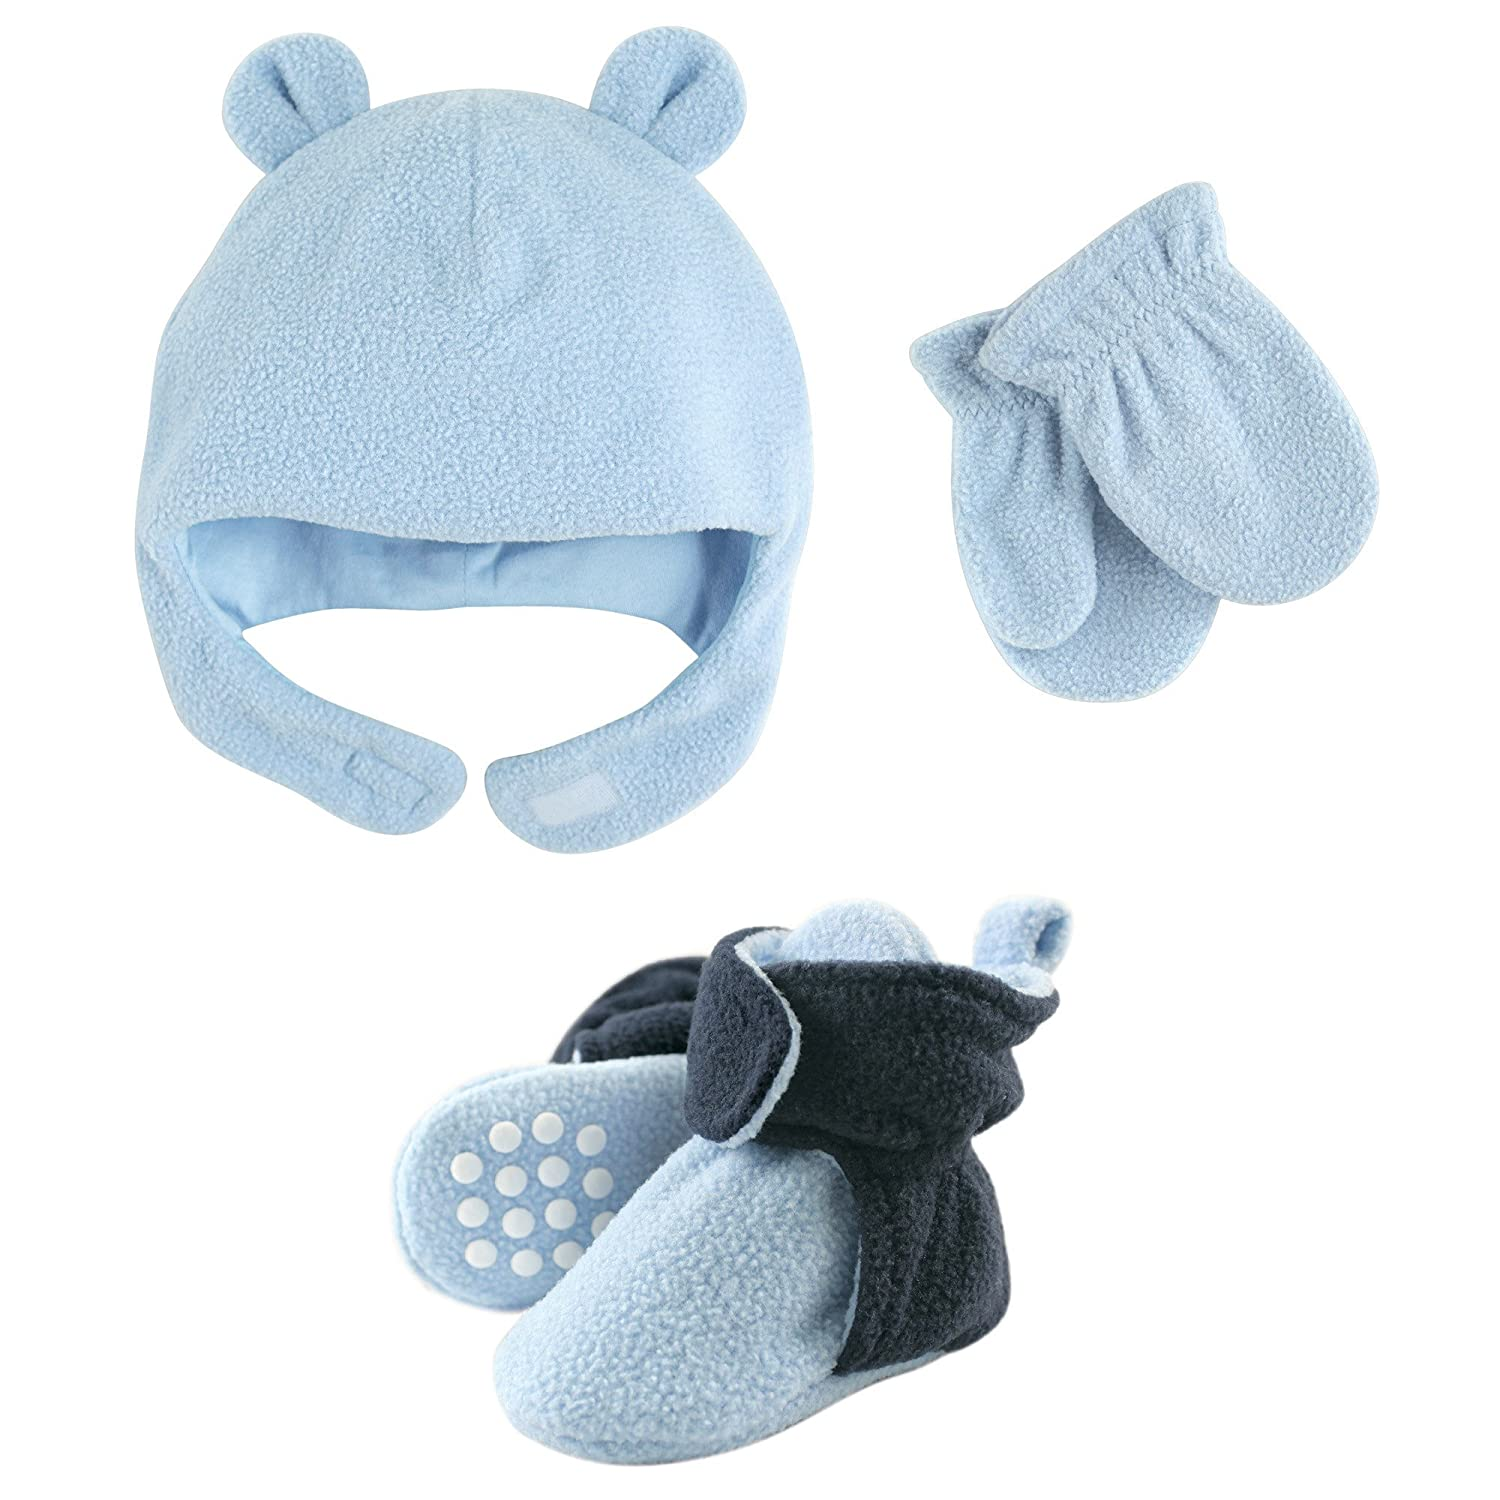 13b794064 Luvable Friends Fleece Winter Hat, Mittens and Booties Set